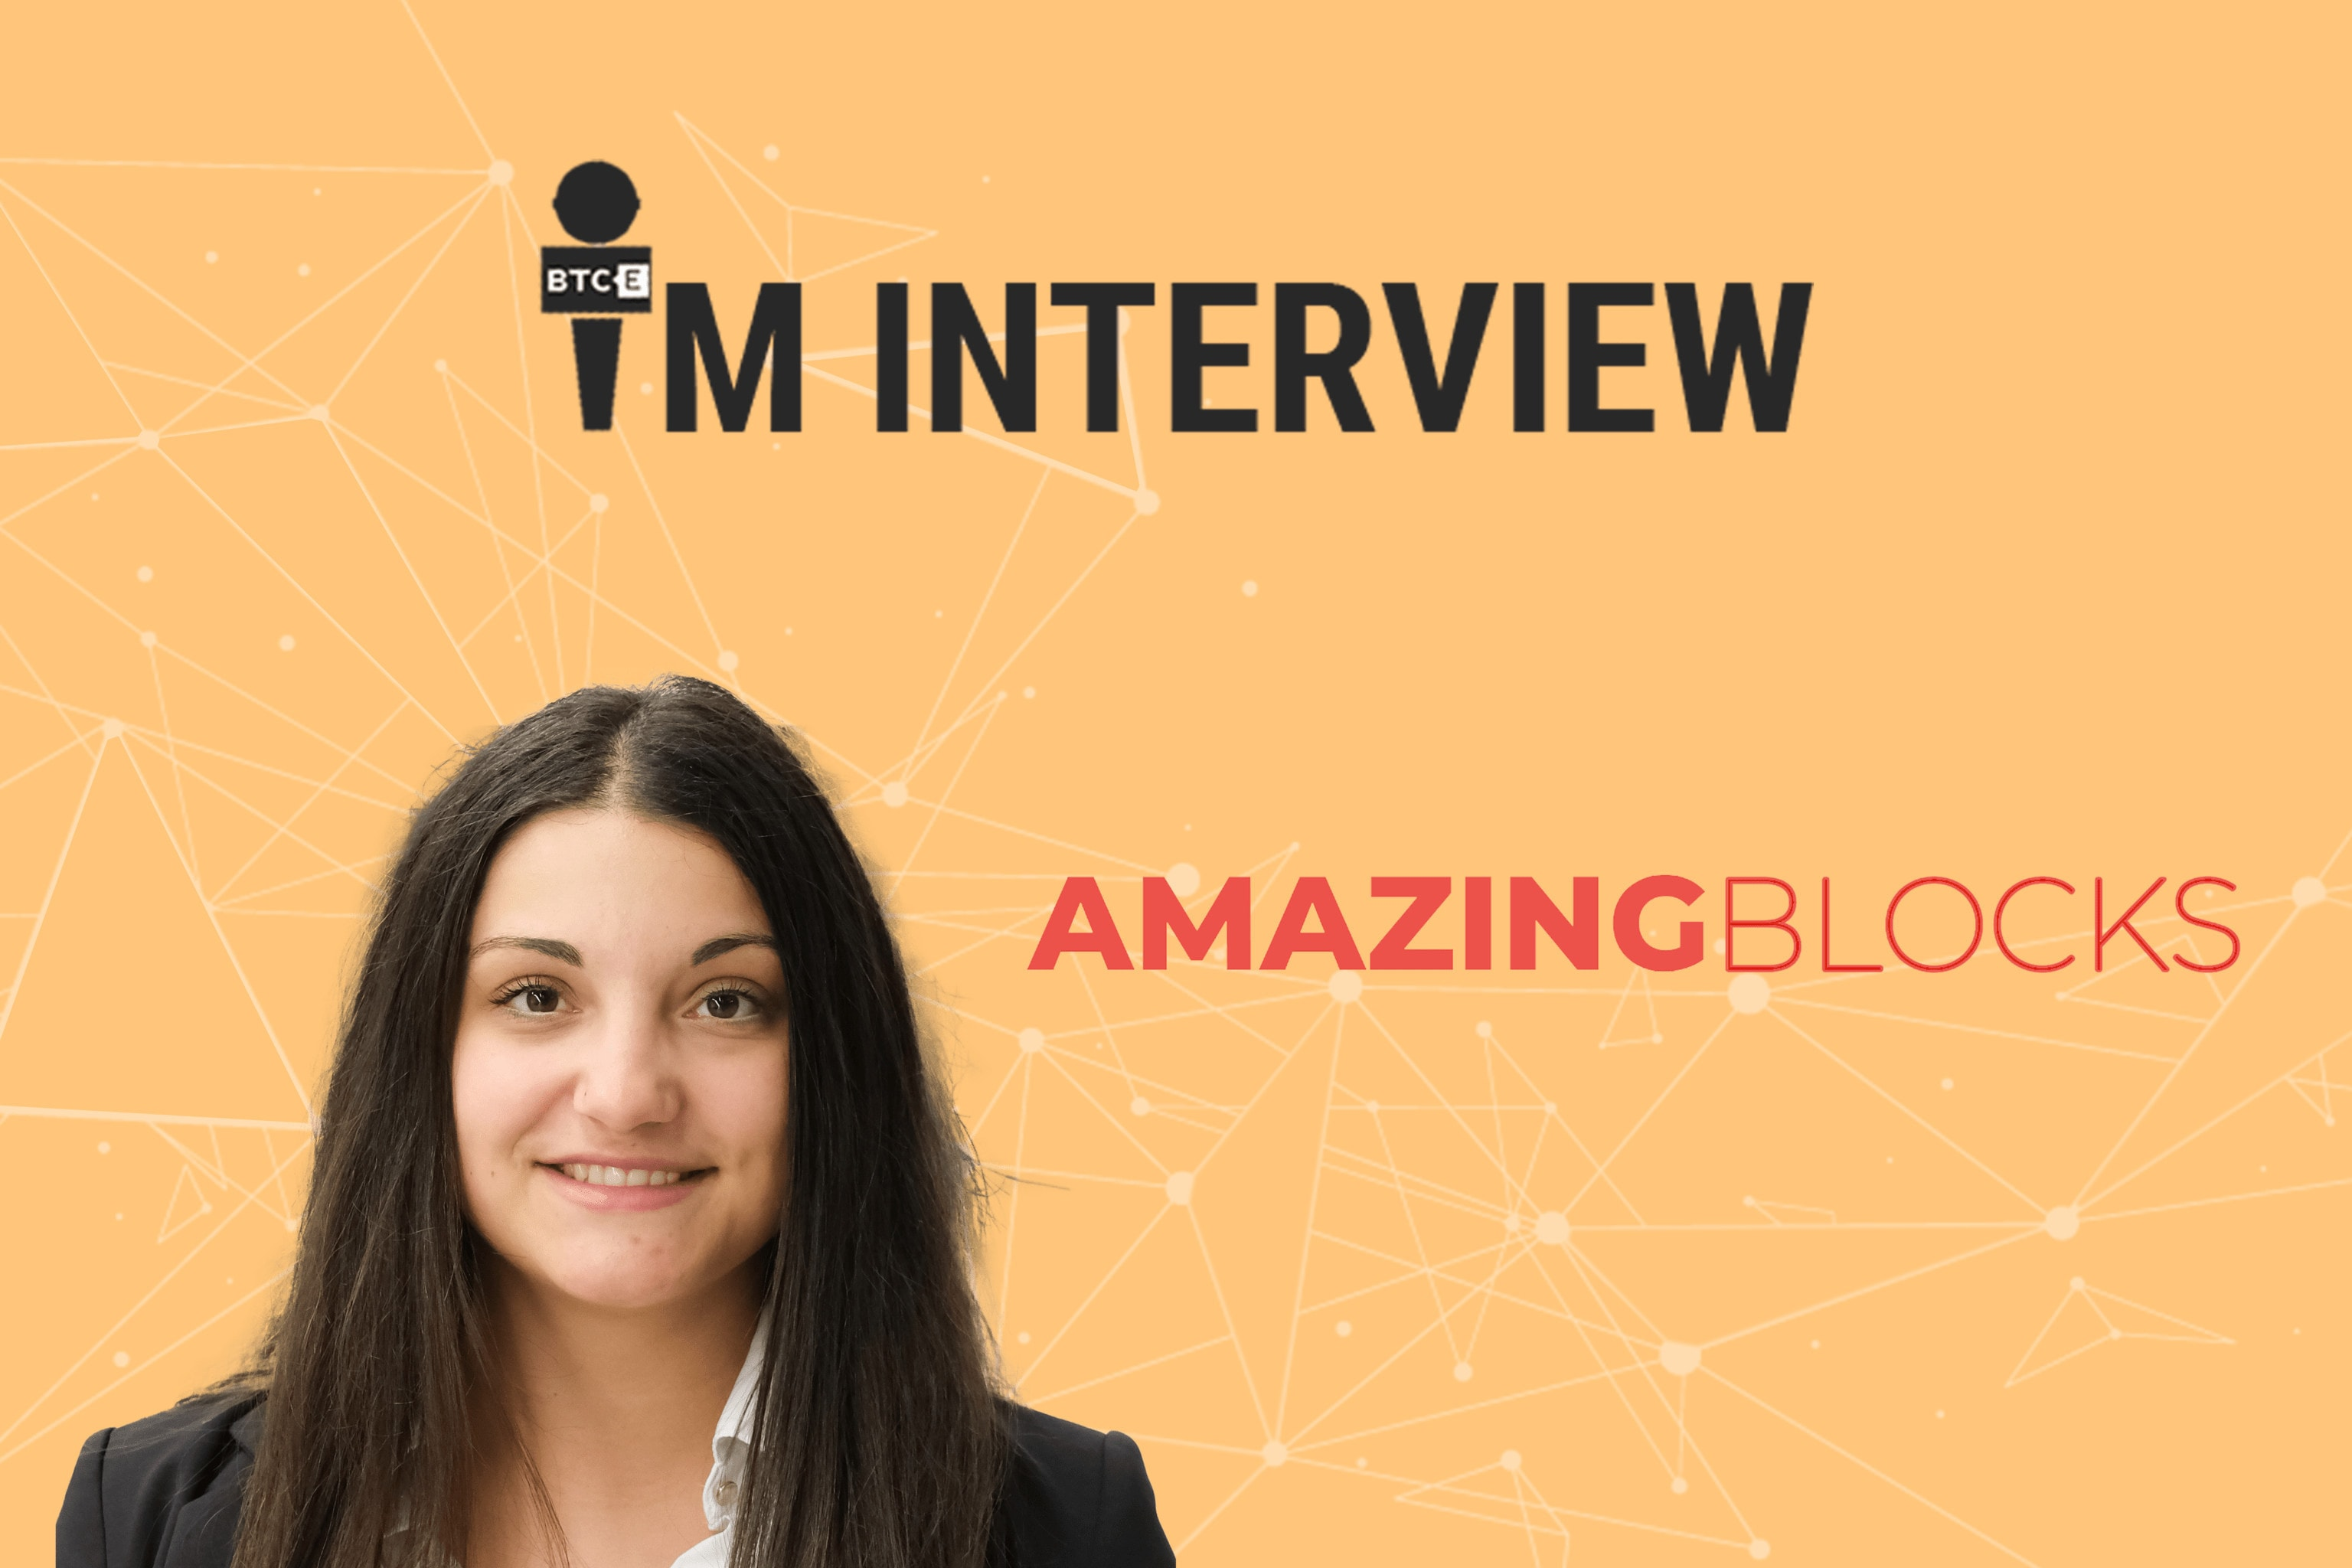 Amazing Blocks CEO